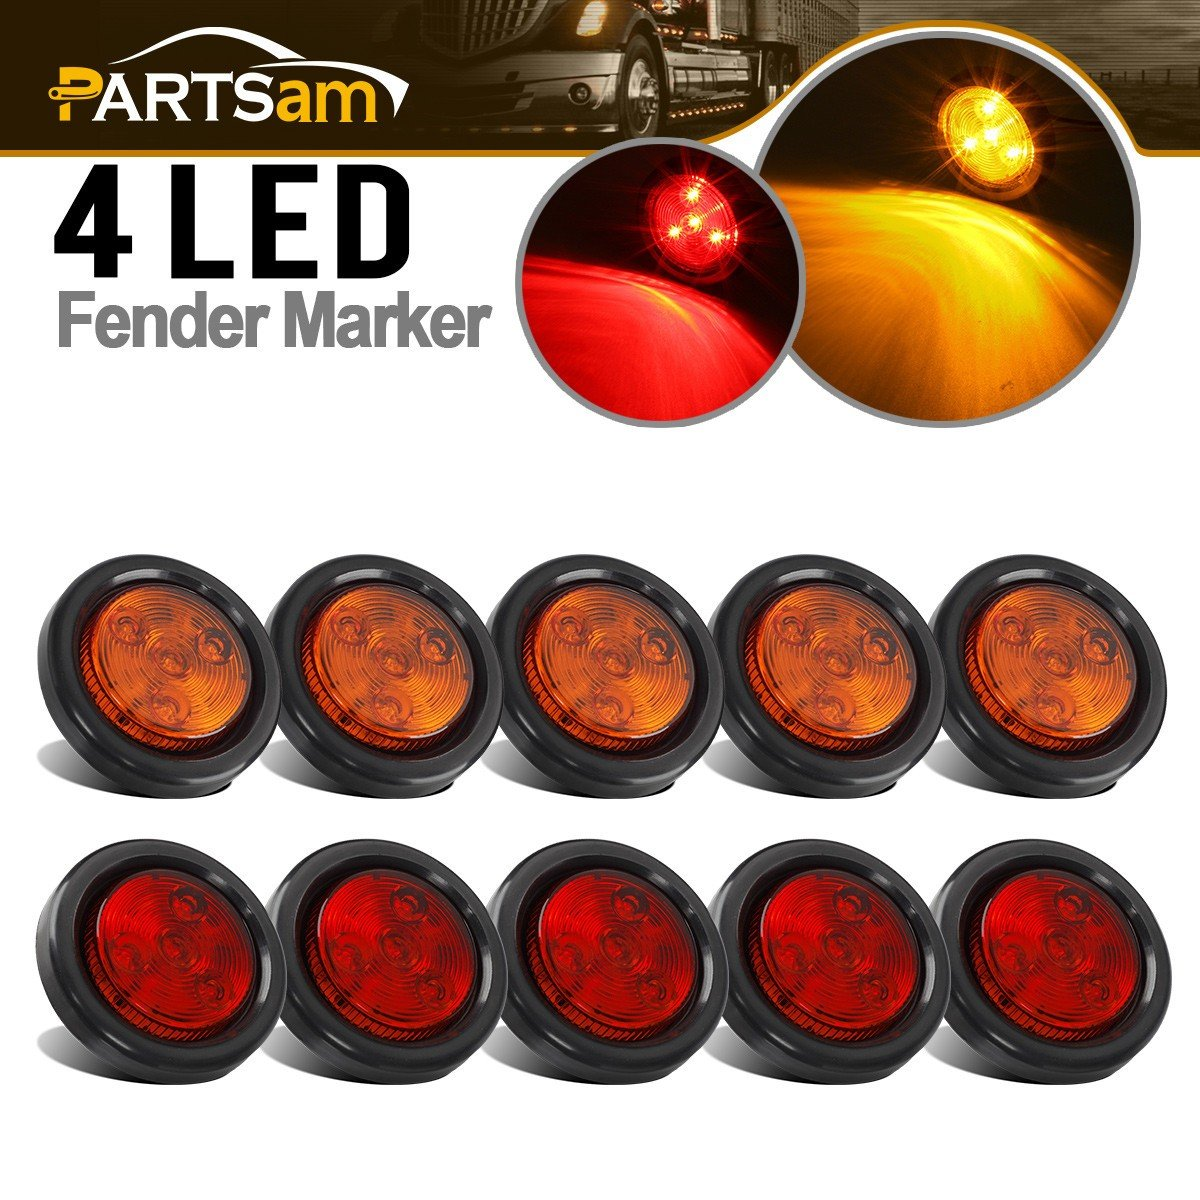 Partsam 10Pack(5 Amber + 5 Red) 2'' Led Round Side Marker Light Grommet Flush Mount 4LED, Sealed 2 Round led Marker Lights Truck Trailer with Reflex Lens, IP67 Waterproof by Partsam